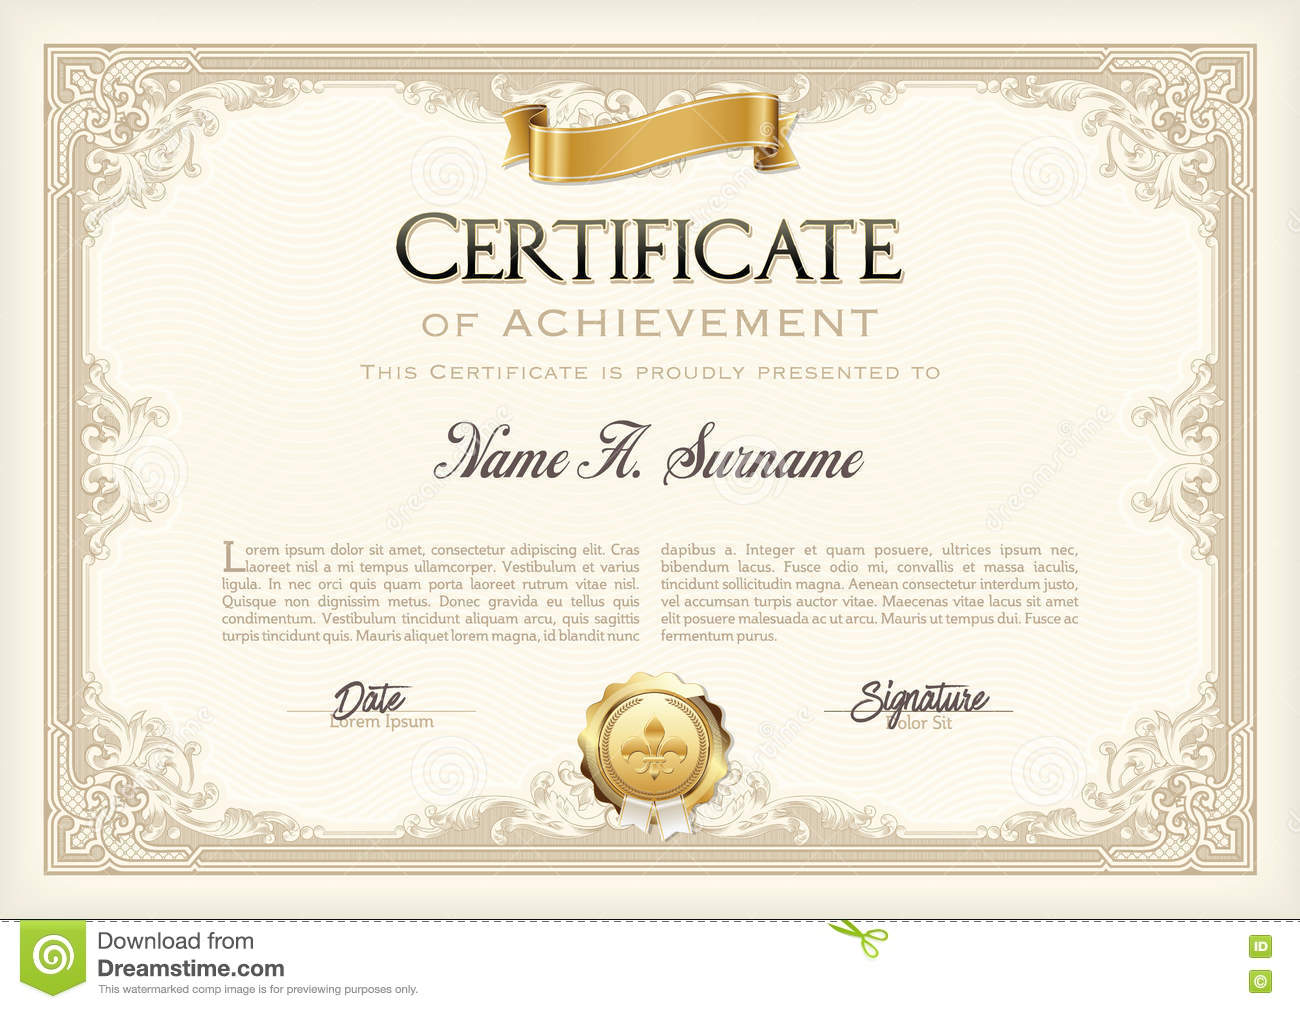 Certificate Of Achievement Vintage Frame With Gold Ribbon – Free Certificate of Achievement